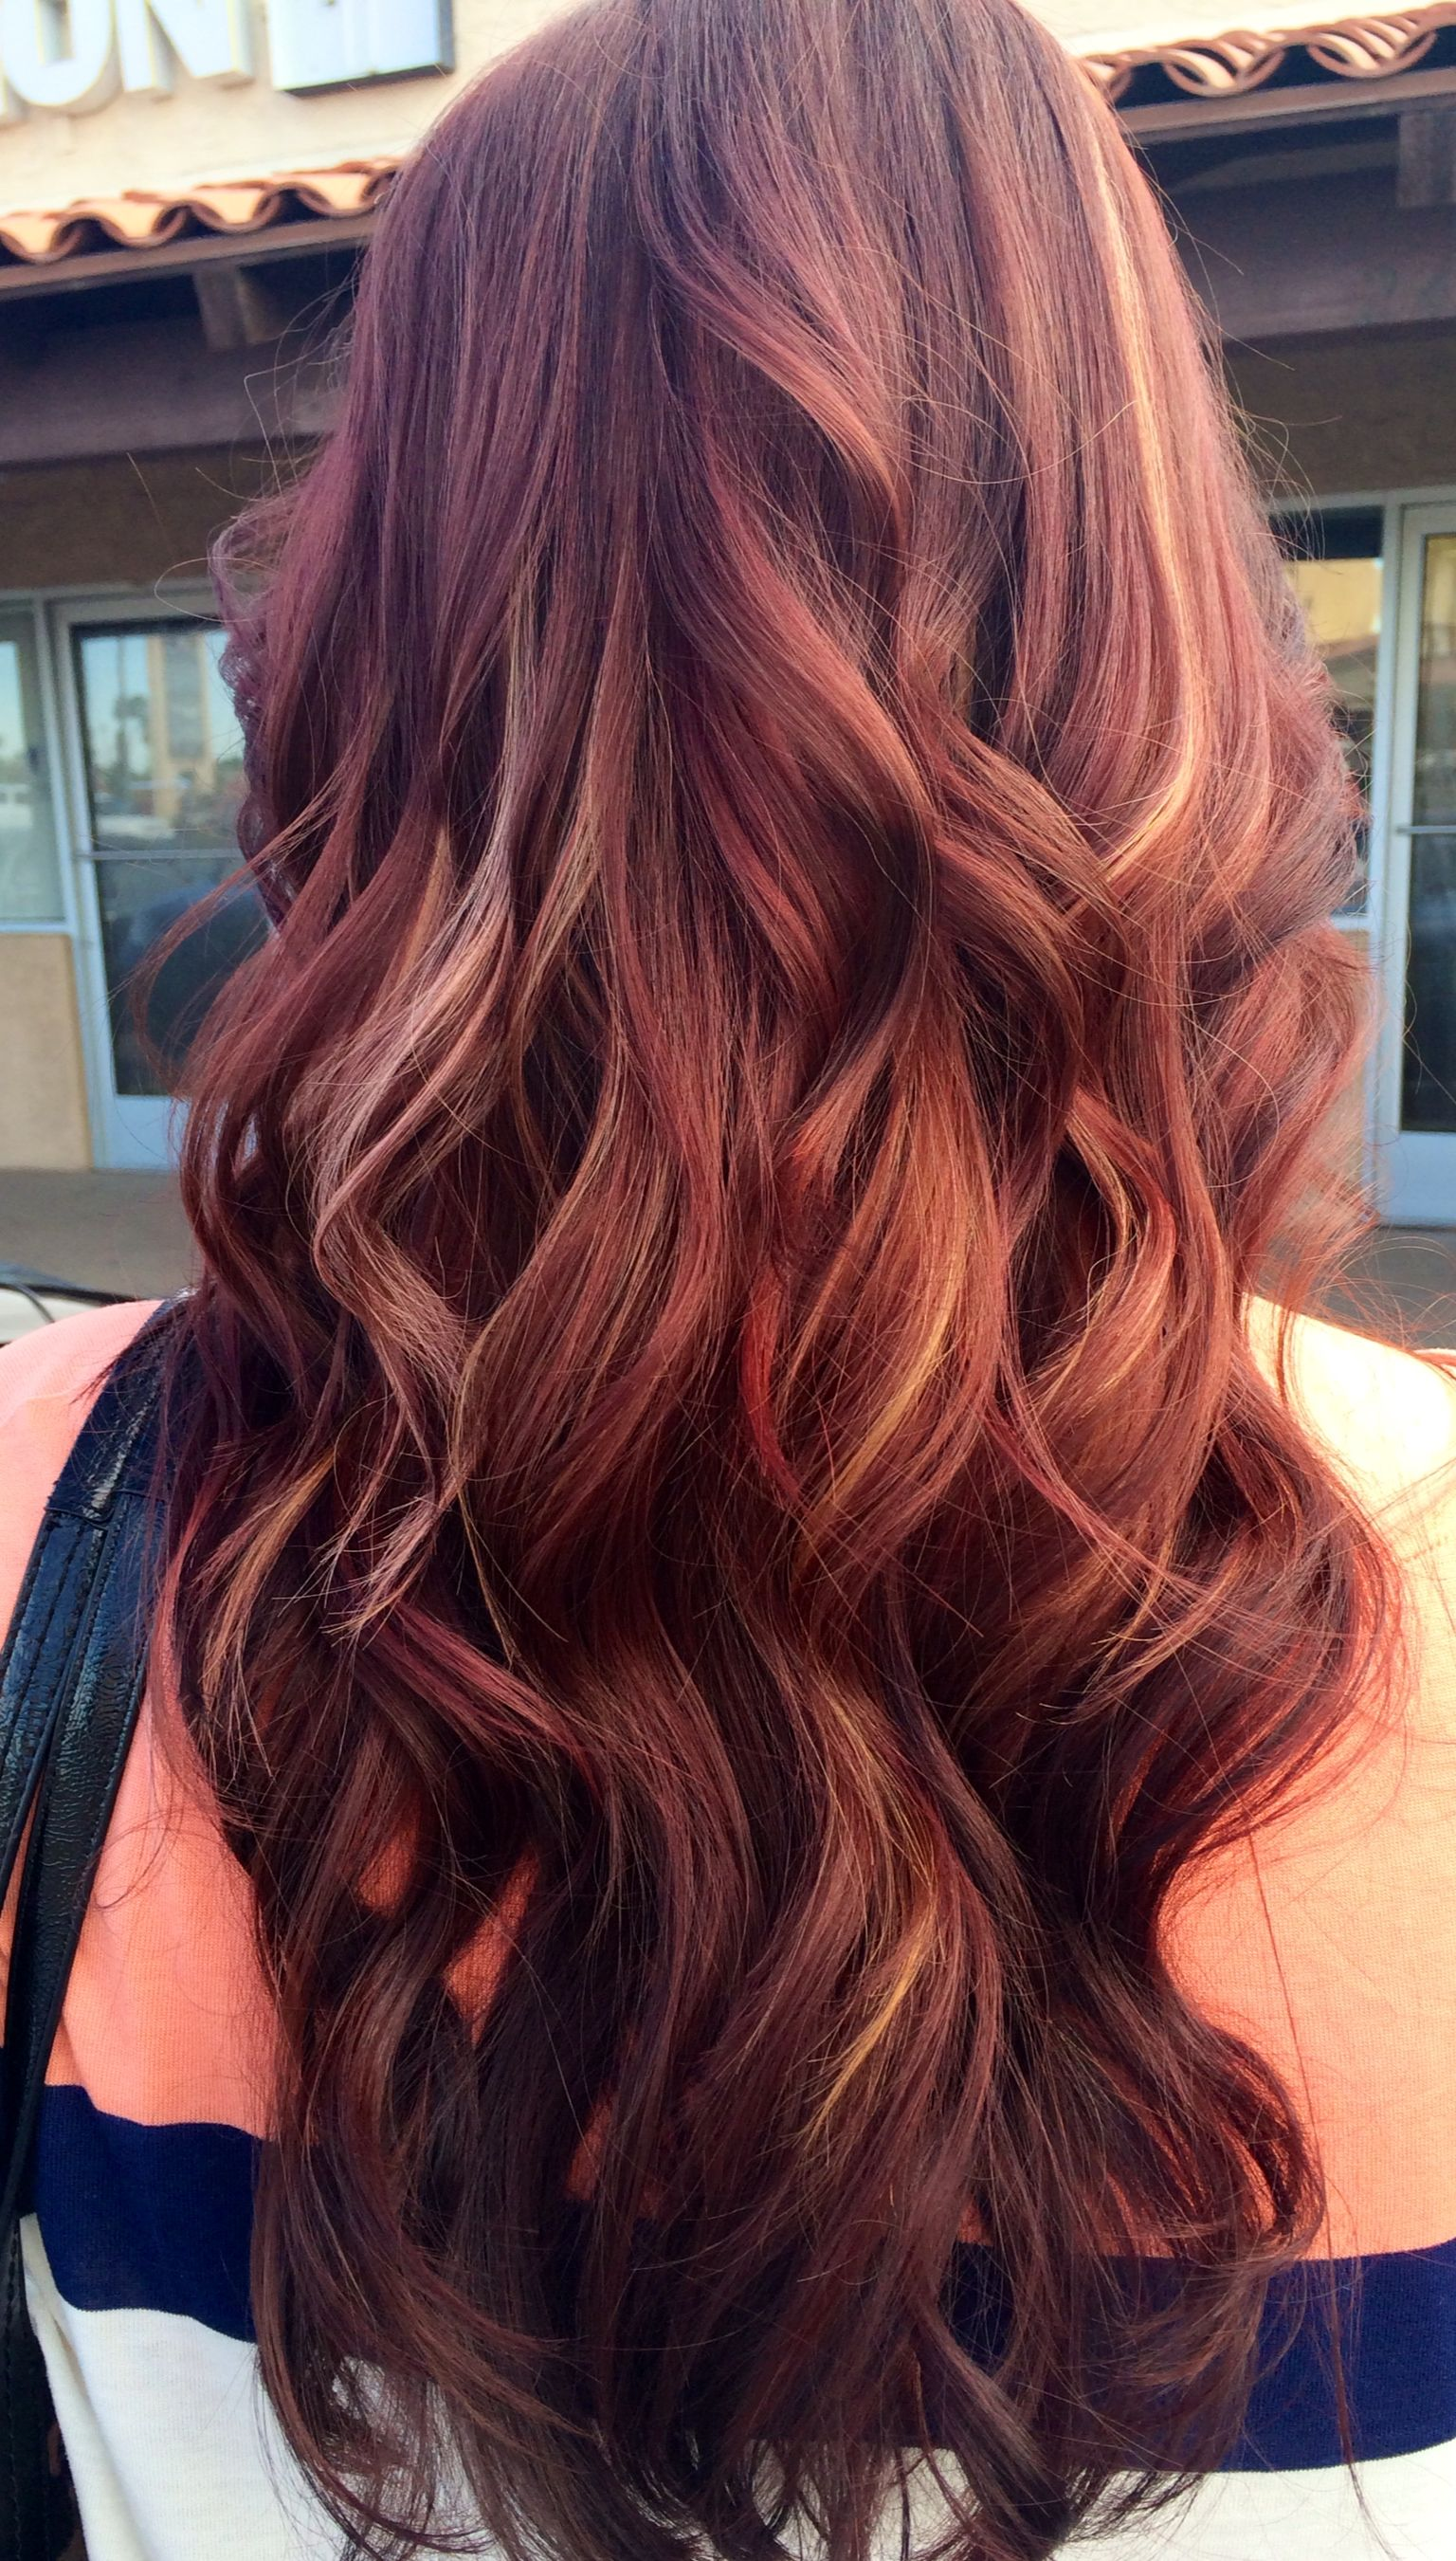 red with blond peekaboo highlights